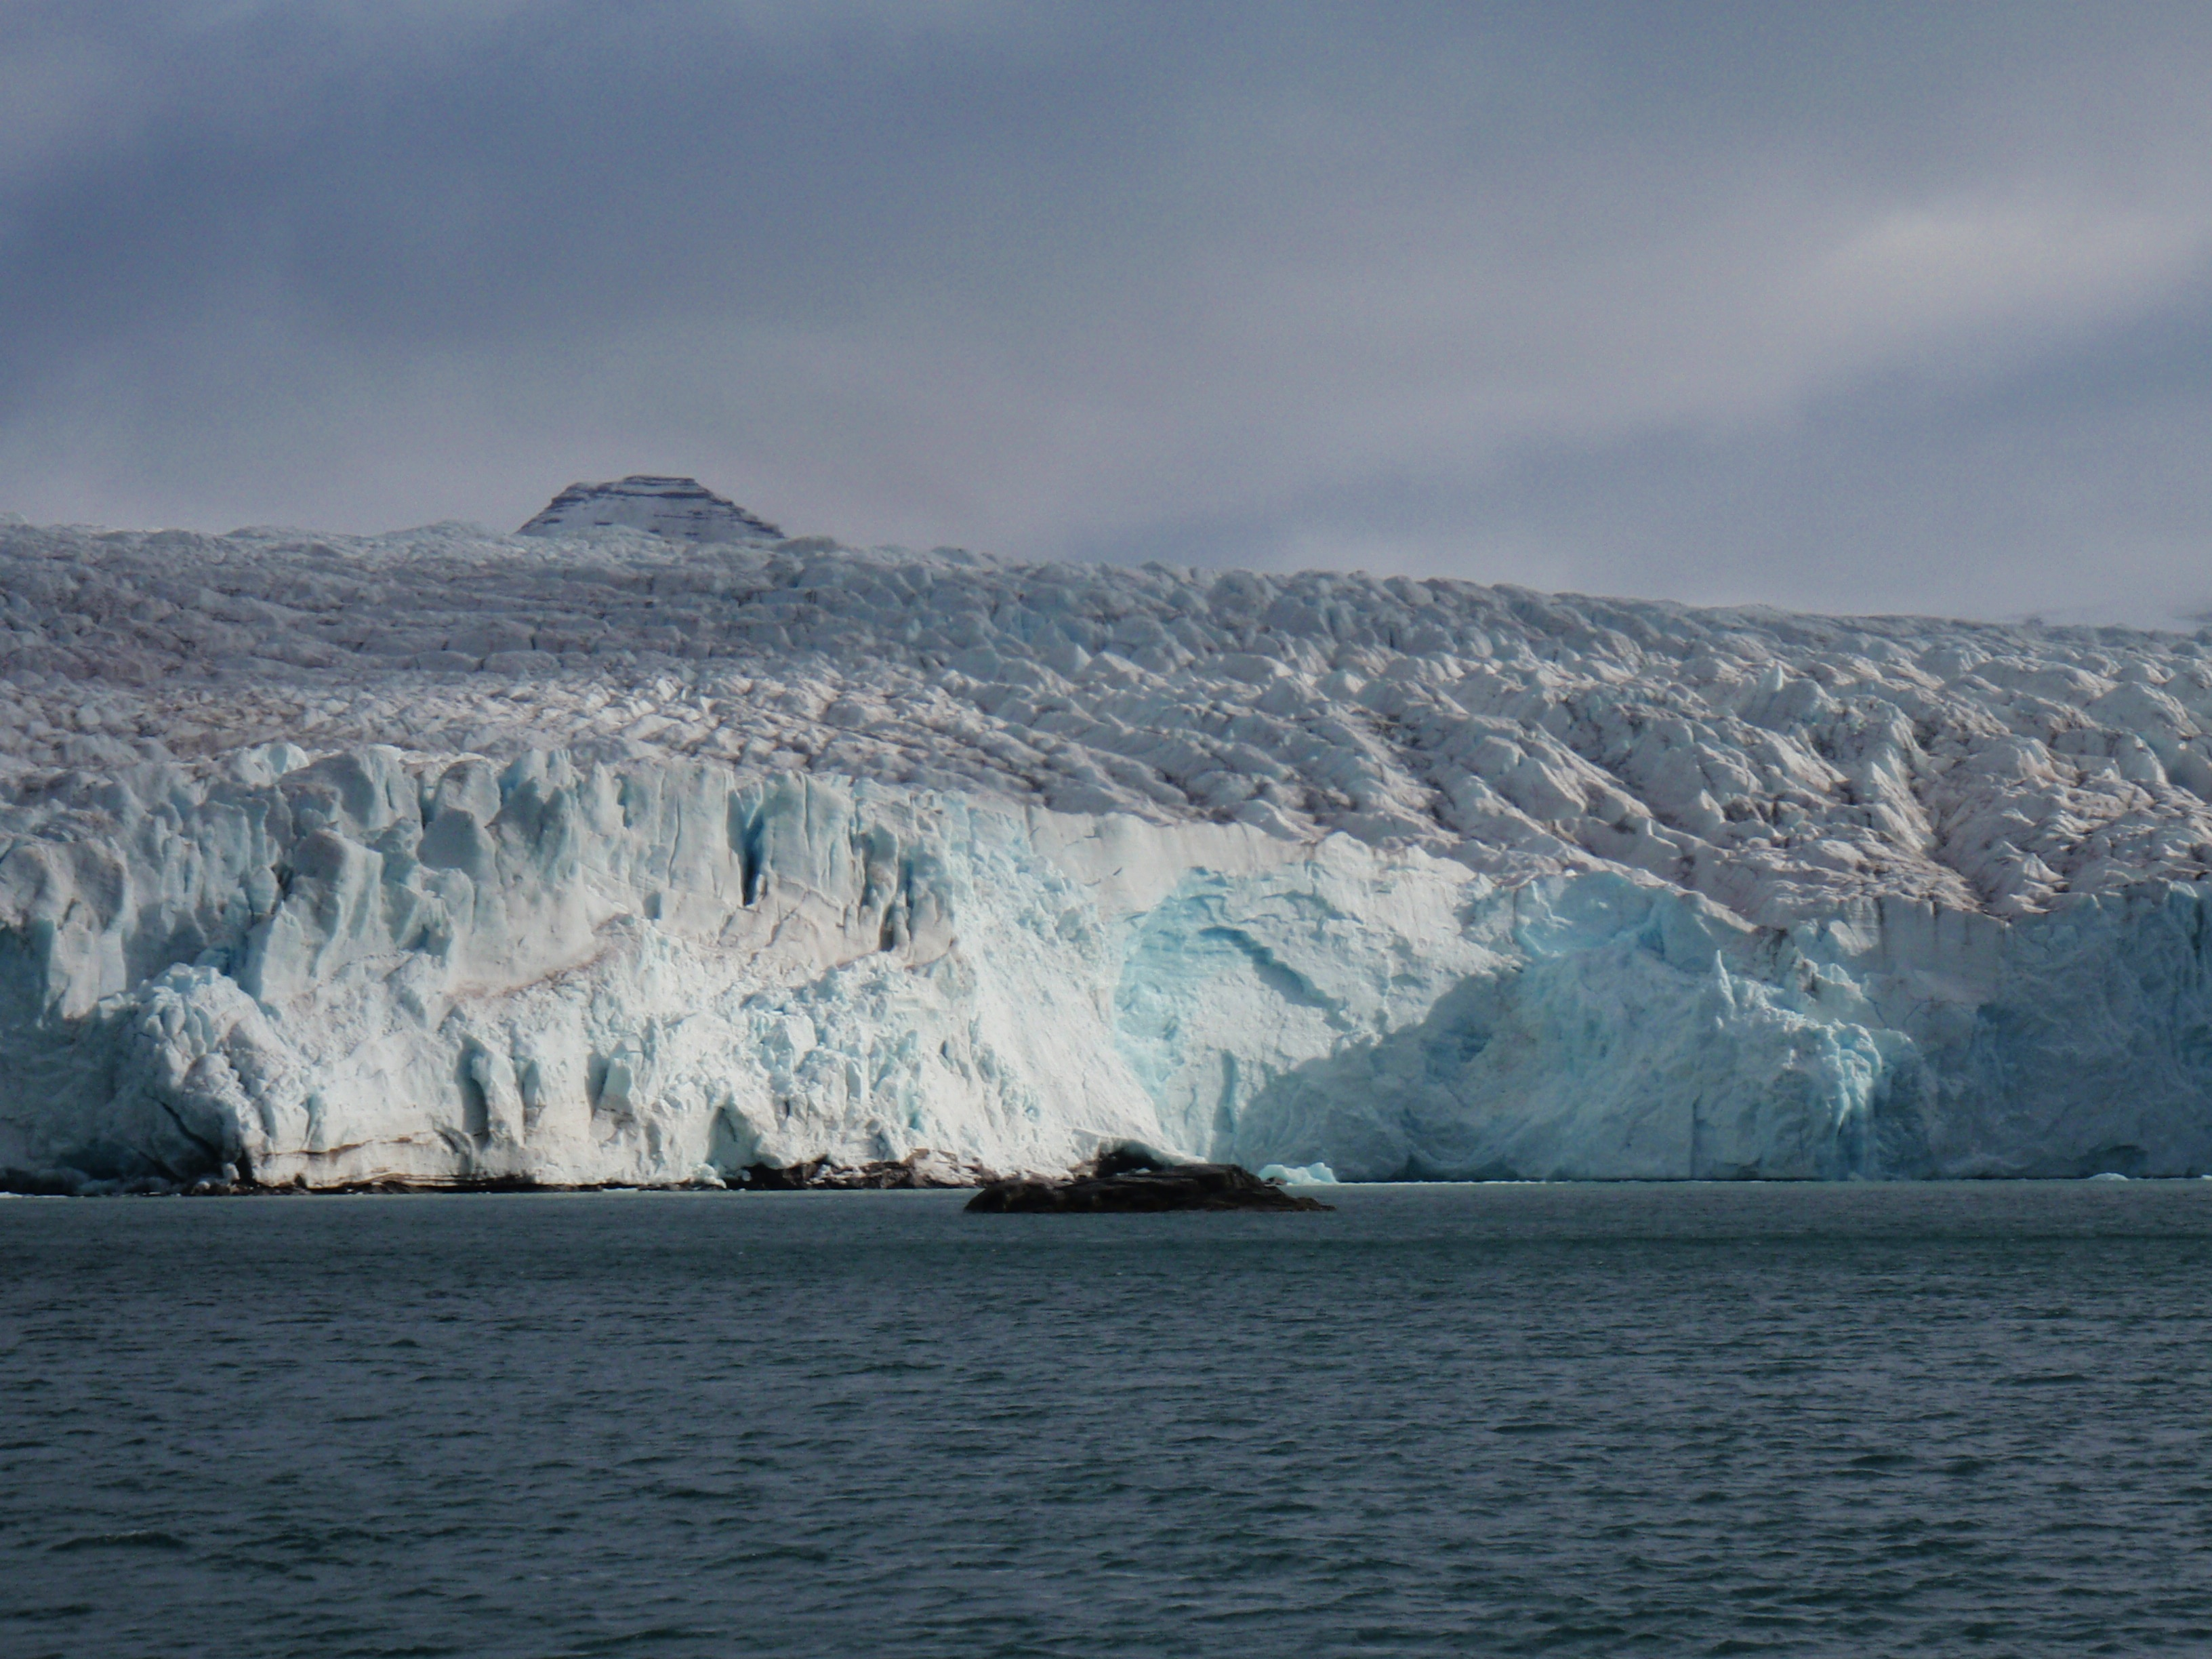 Photo credit: Erik Bonsdorff, The Nordenskiöld Glacier, West Greenland, August 2013.